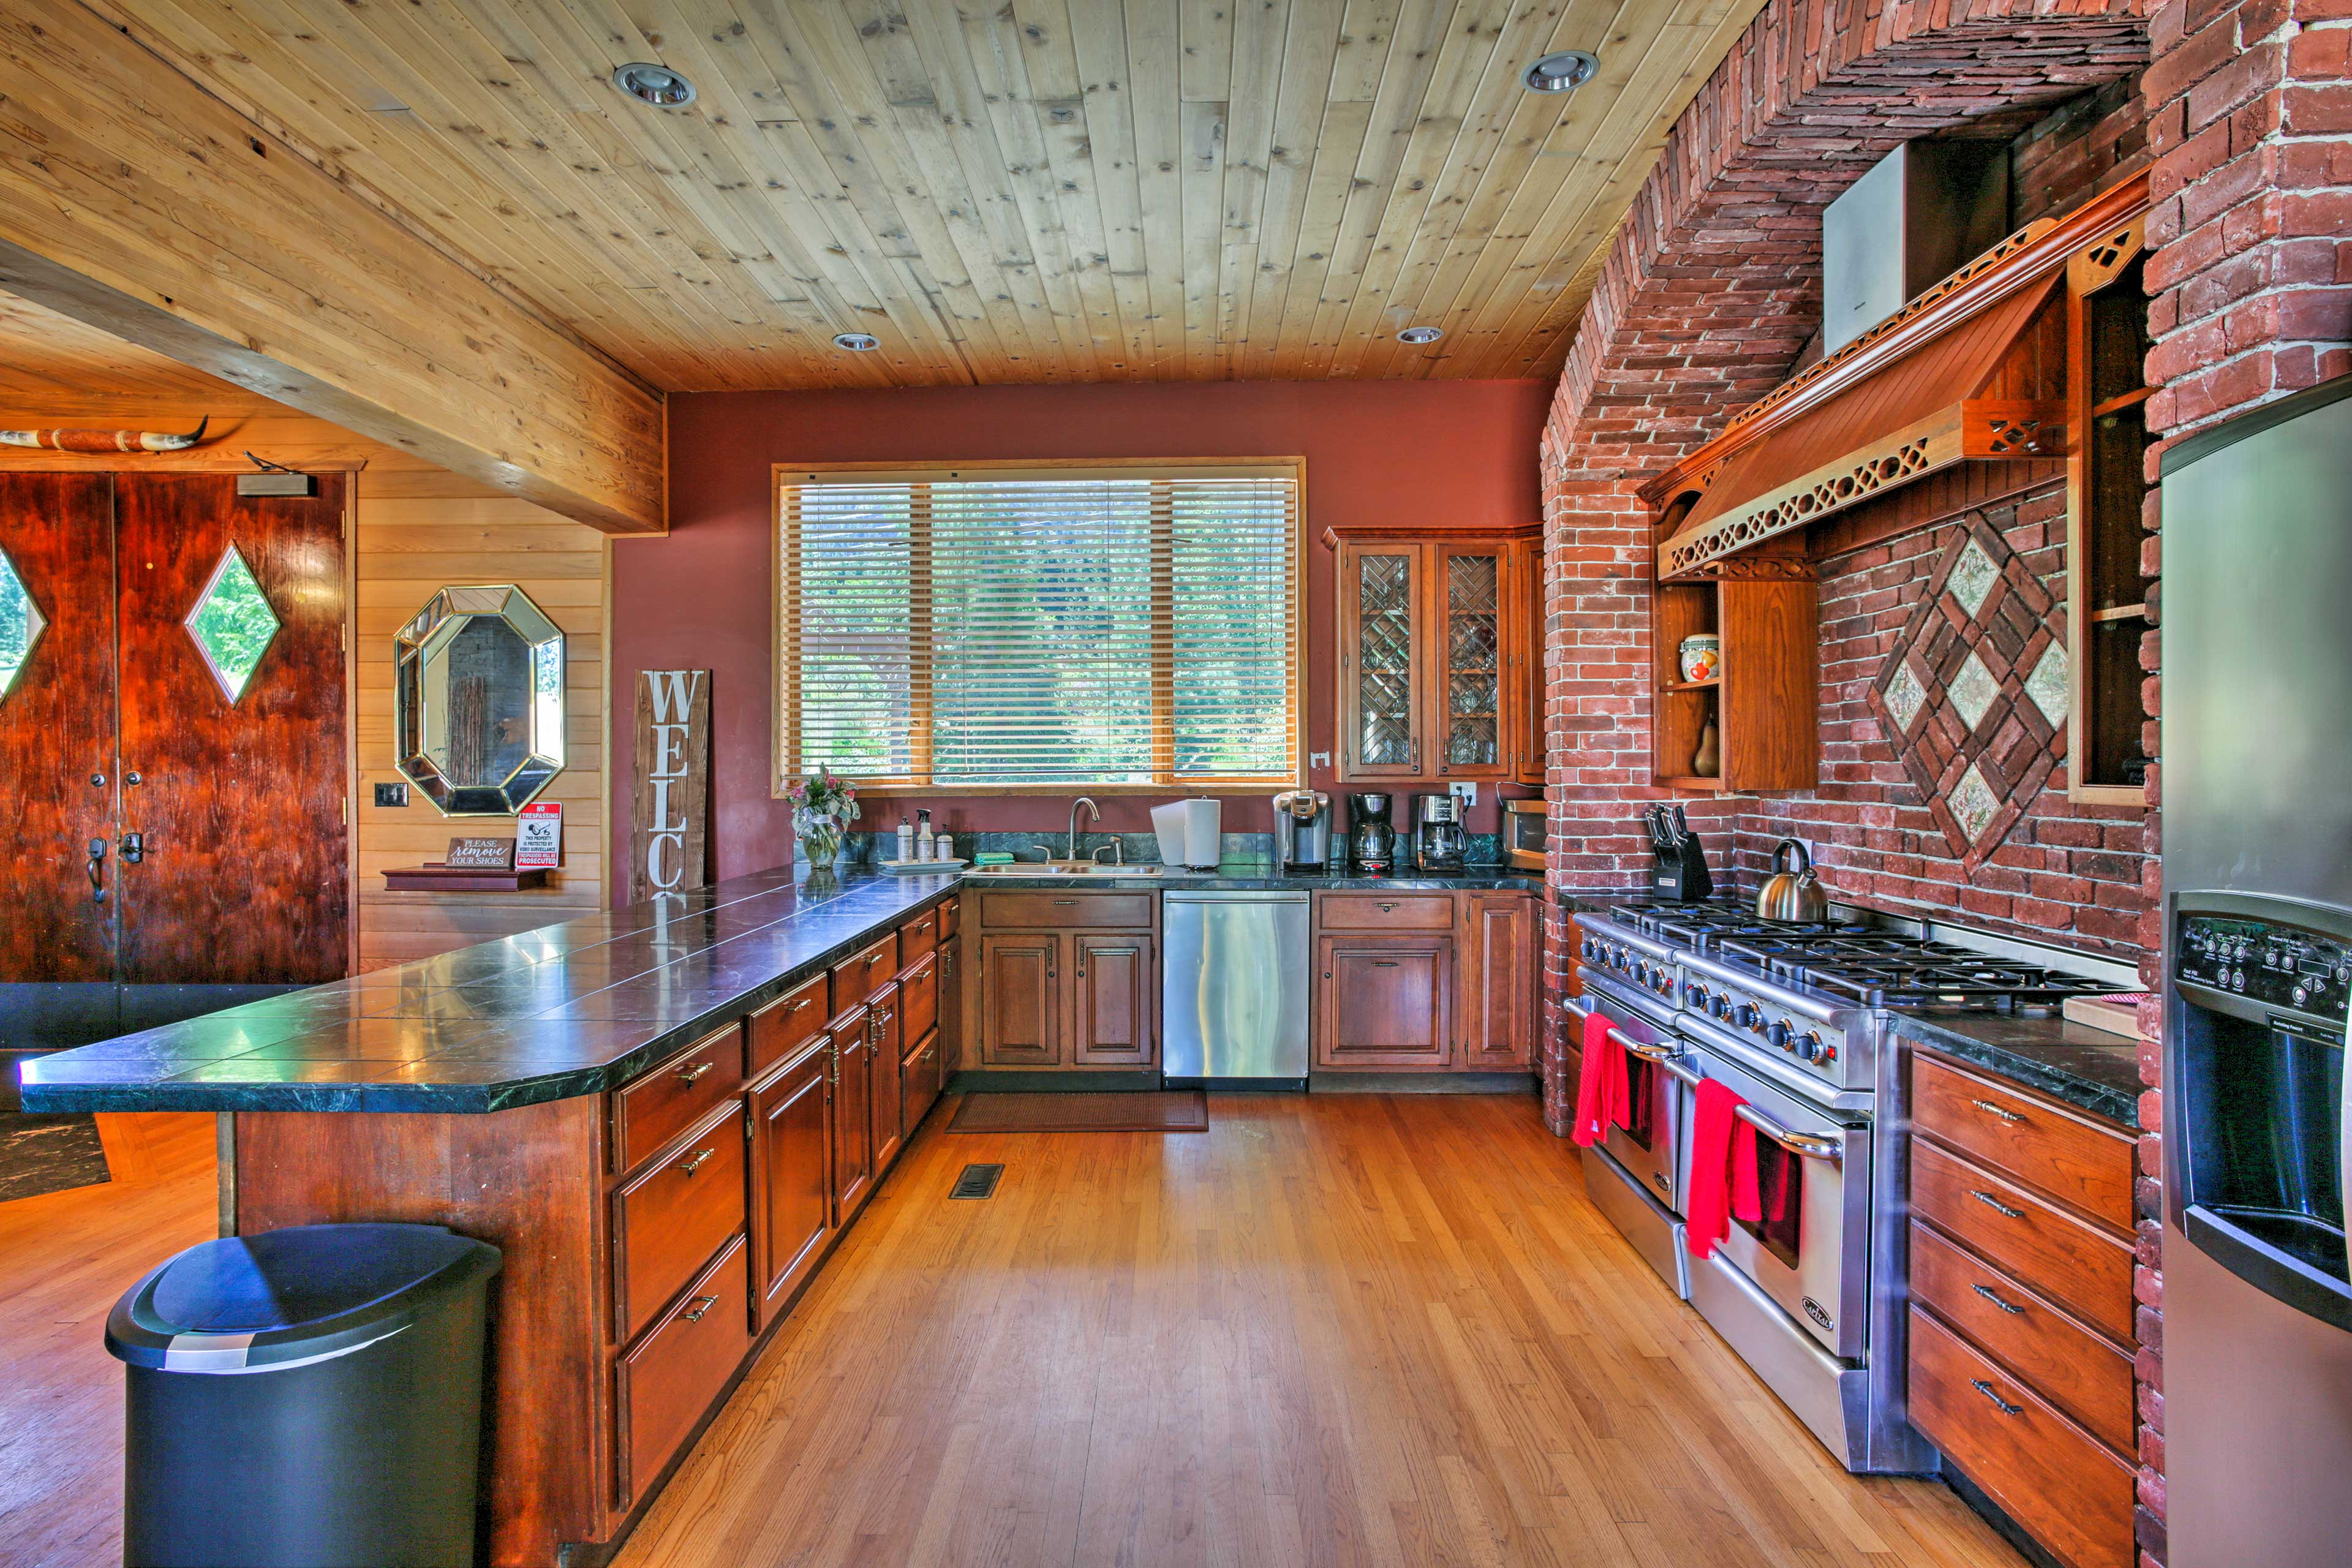 Stainless steel appliances & generous counter space let everyone pitch in.